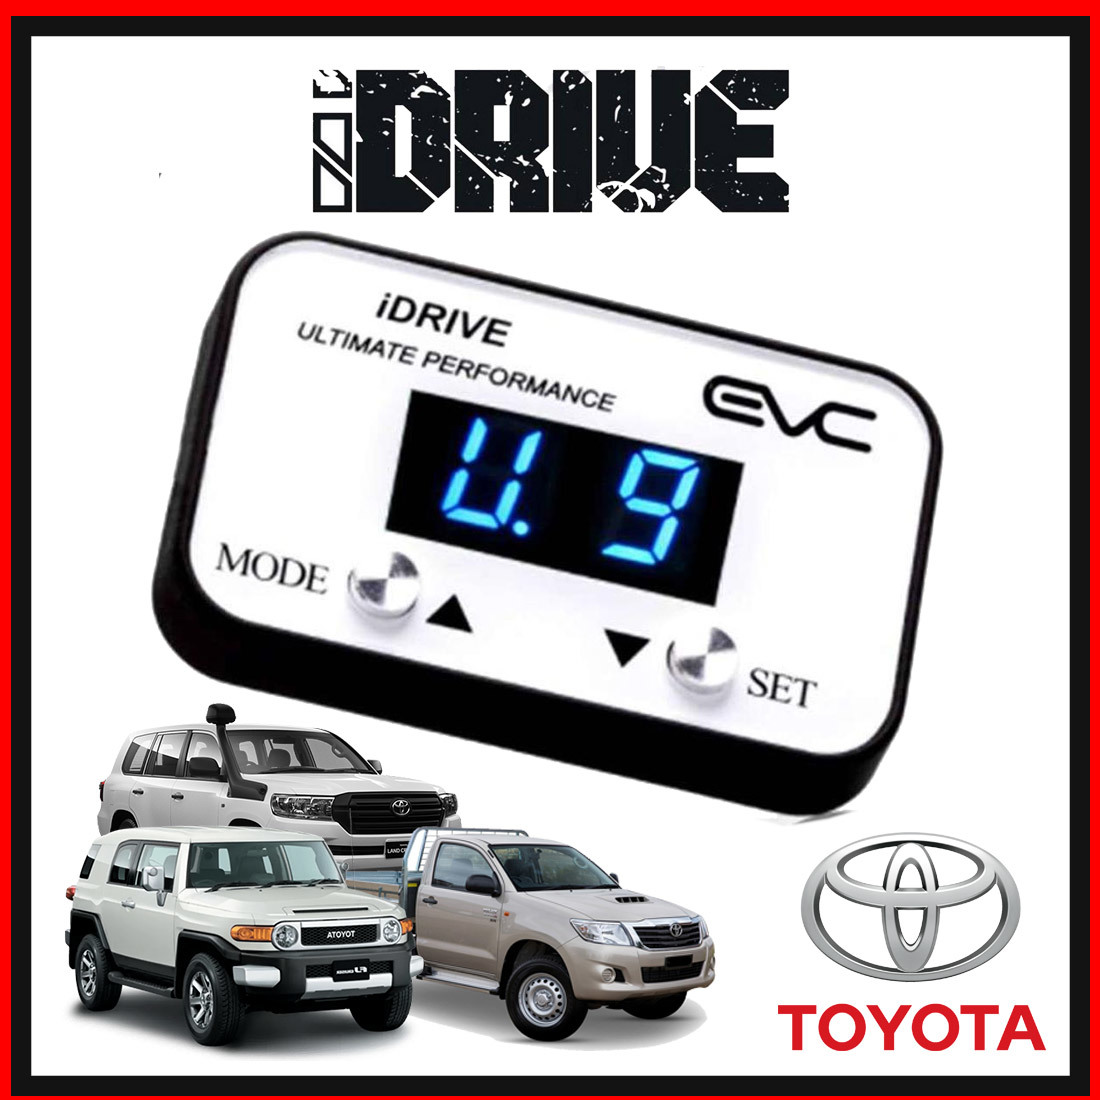 iDrive Windbooster Throttle Controller (Toyota) image